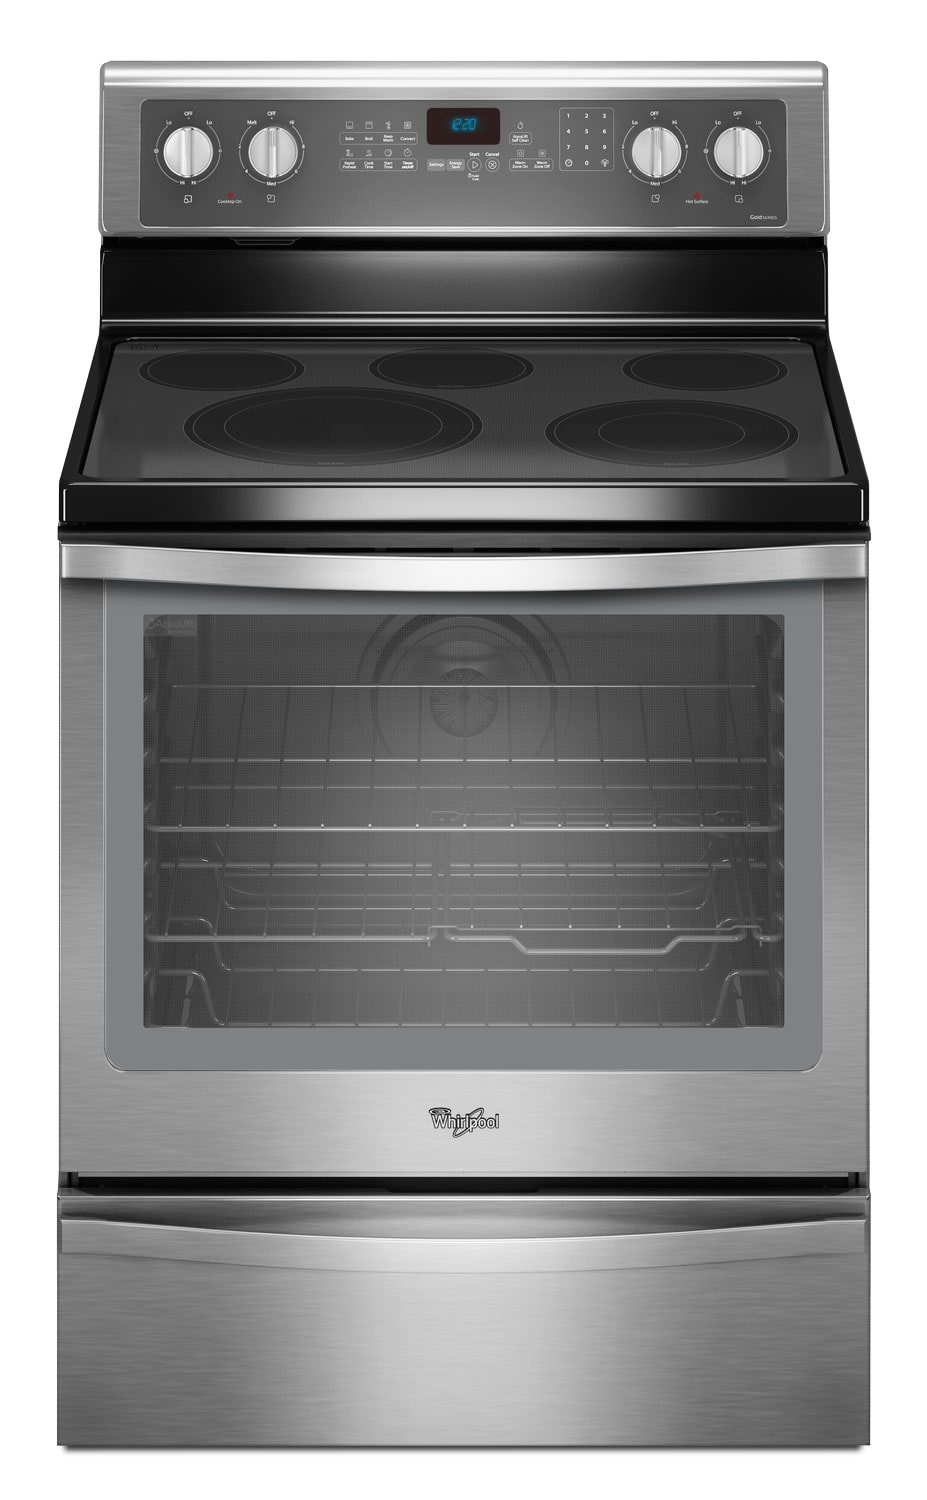 Cooking Products - Whirlpool Stainless Steel Freestanding Electric Convection Range (6.4 Cu. Ft.) - YWFE715H0ES